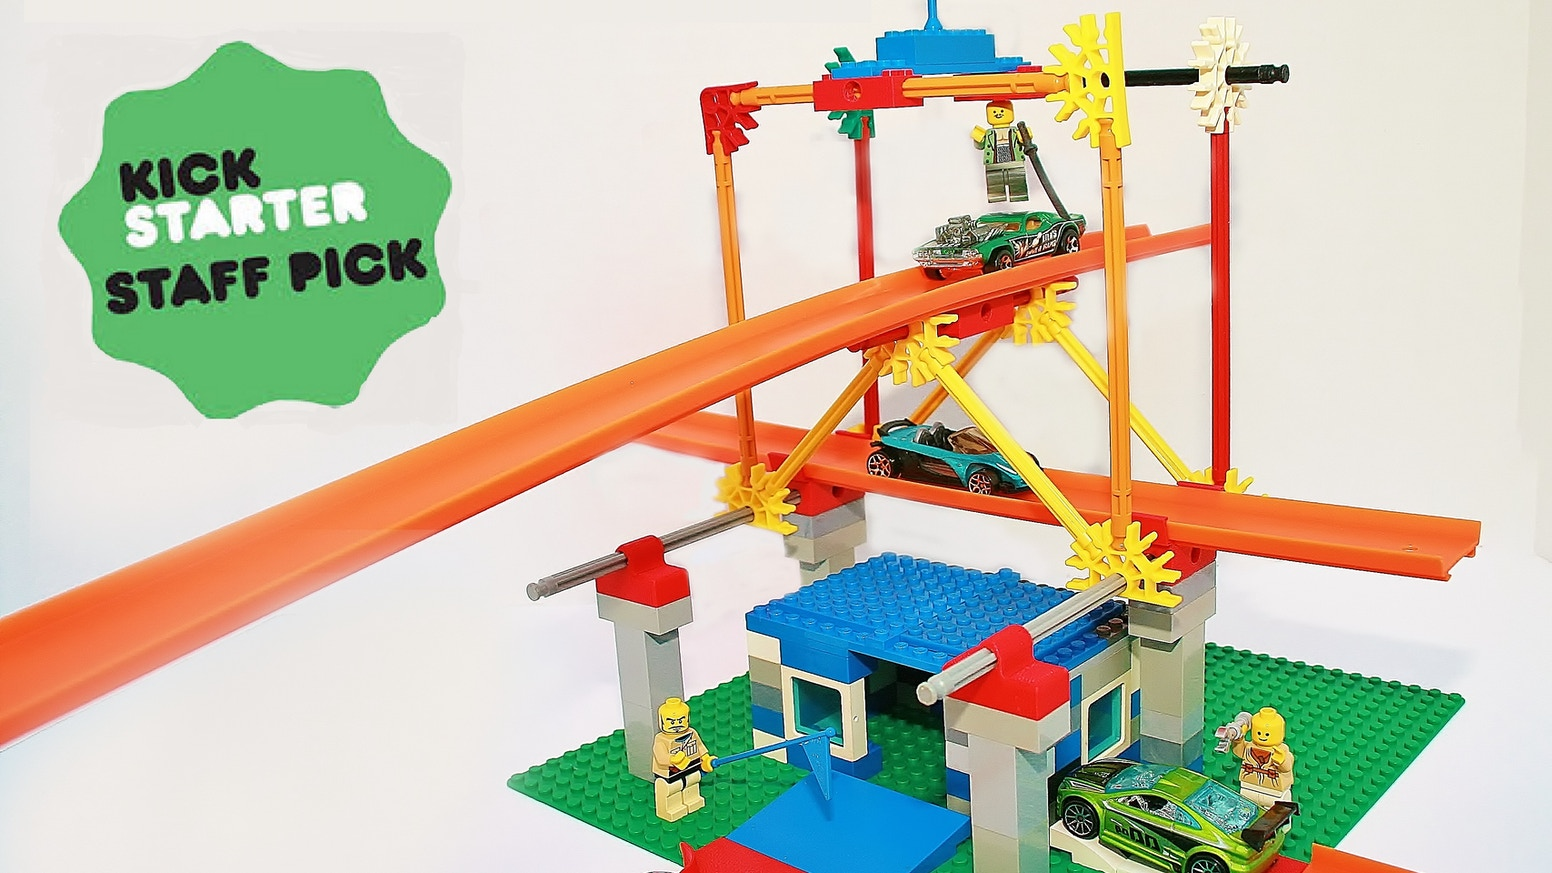 Versa Bricks™ allow you to connect your Lego® brick creations to HOT WHEELS® tracks and K'NEX® building systems.